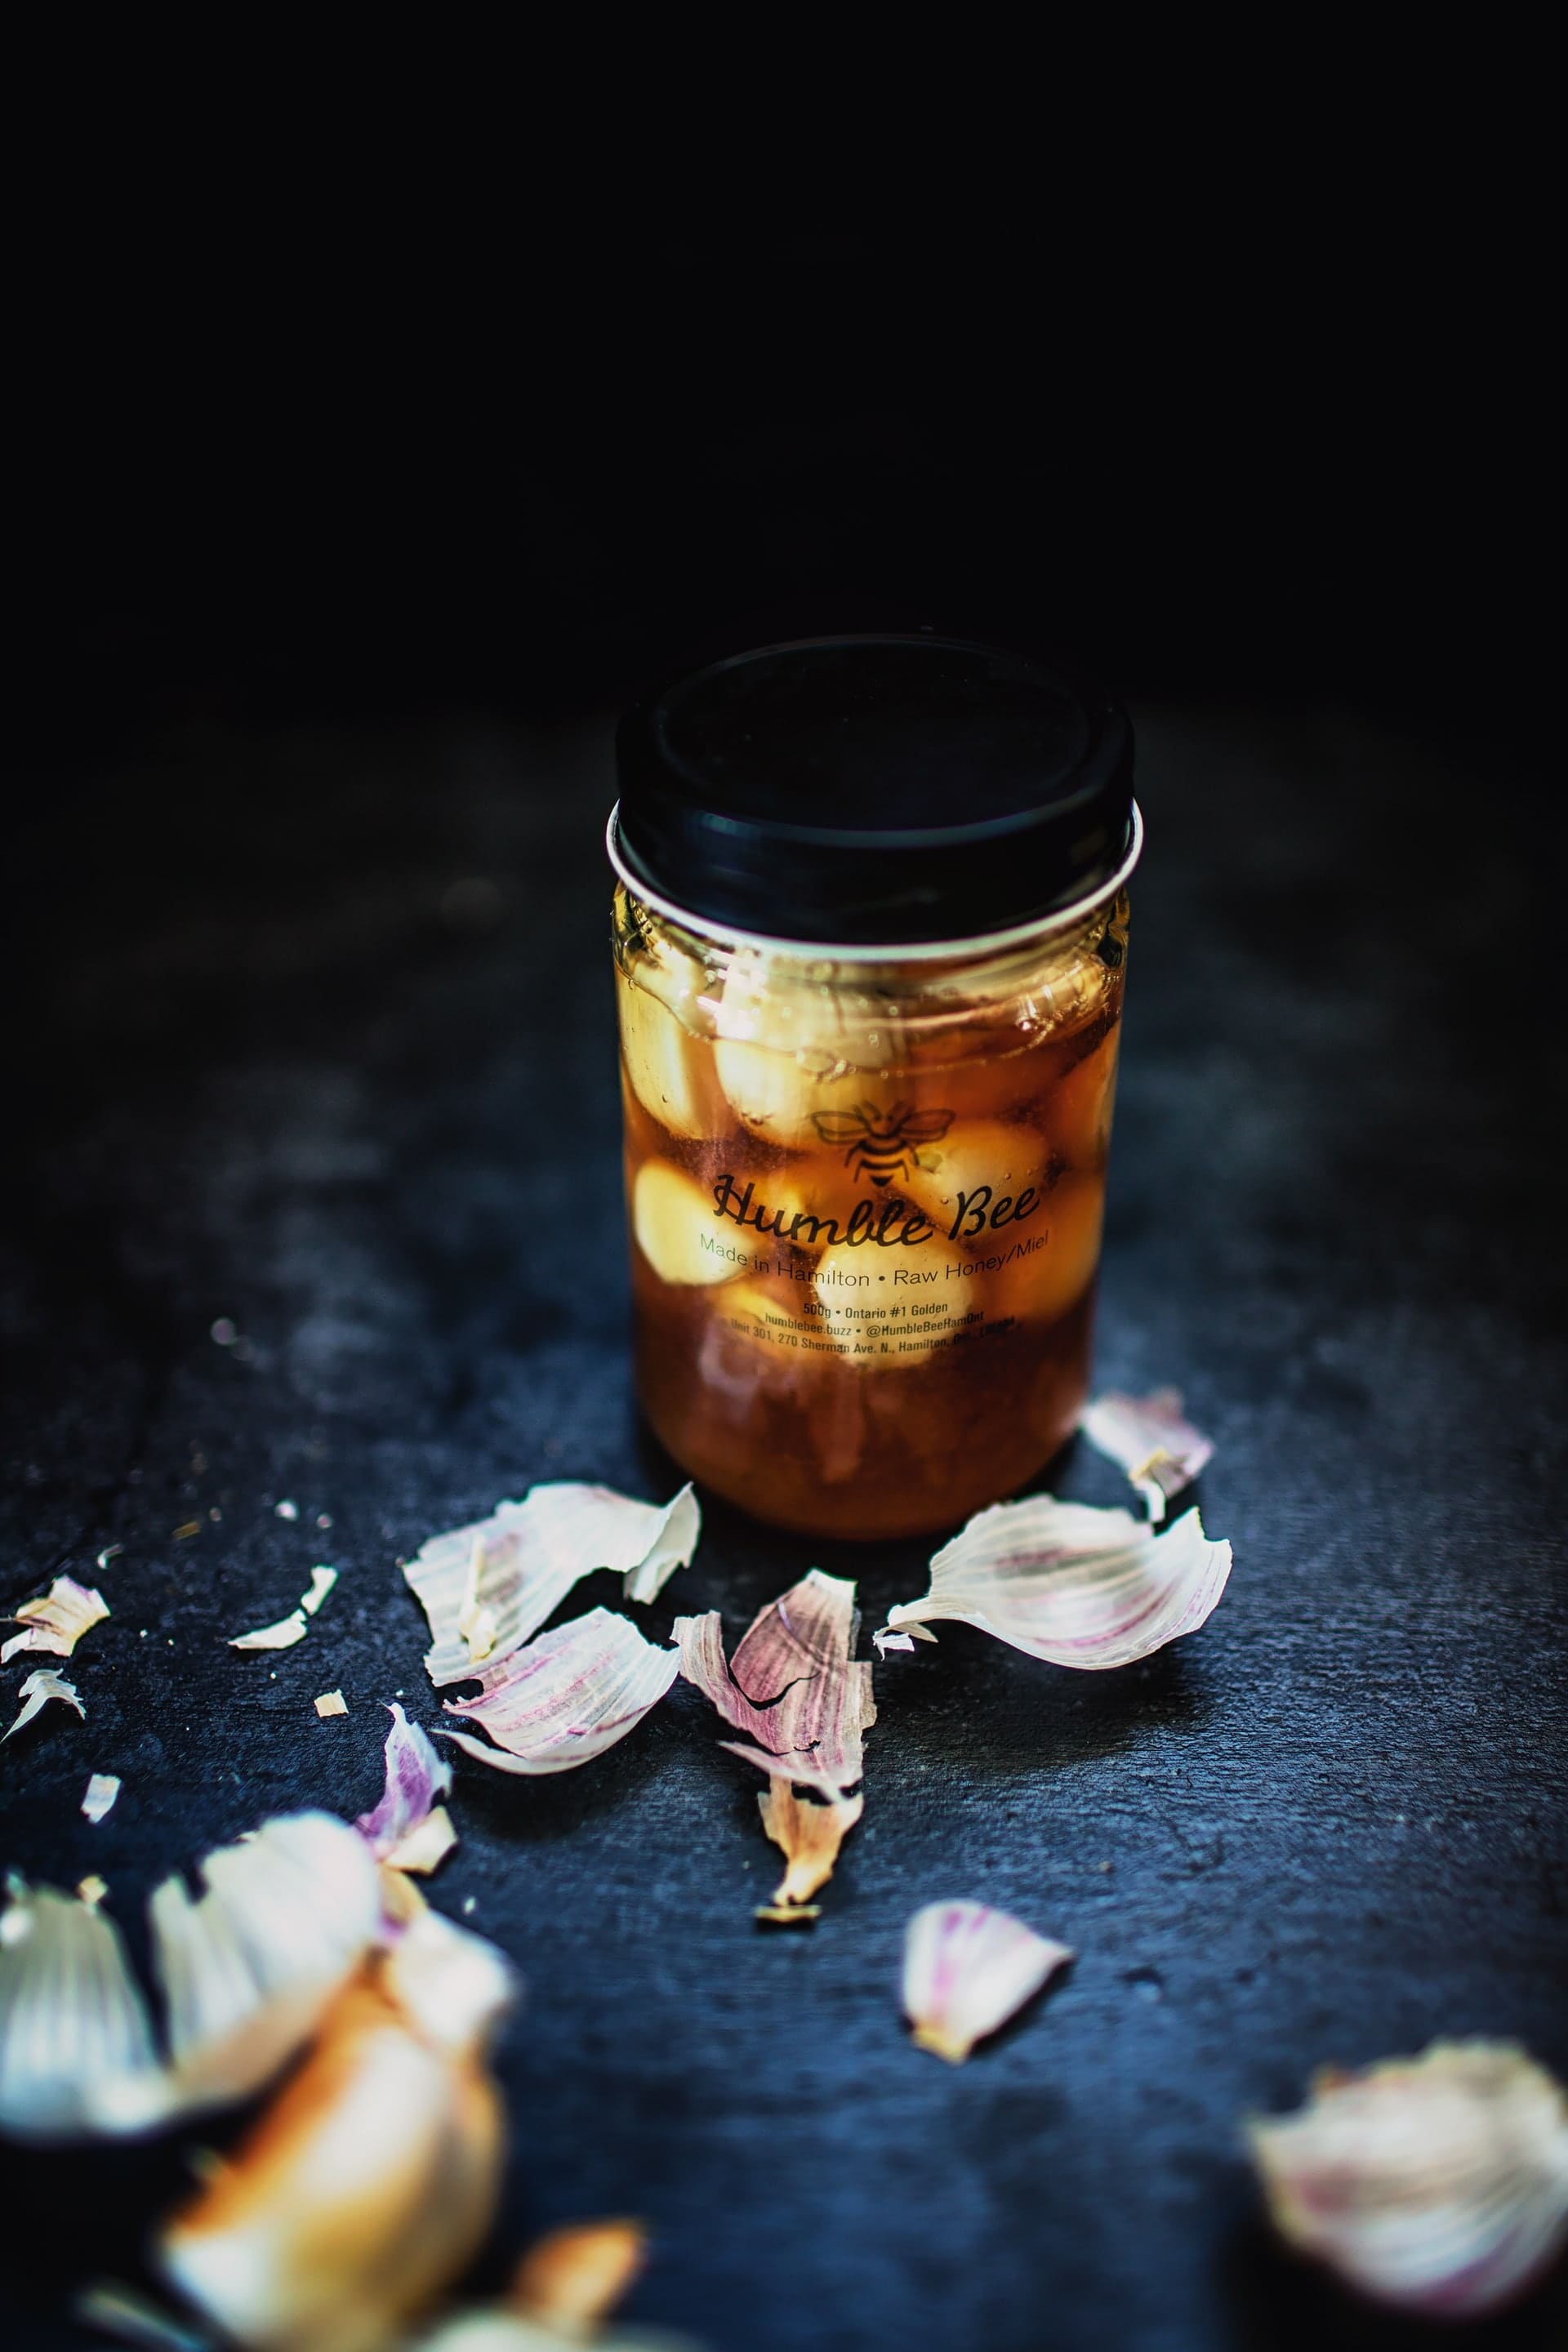 garlic and honey ferment in a glass jar for cold and flu season